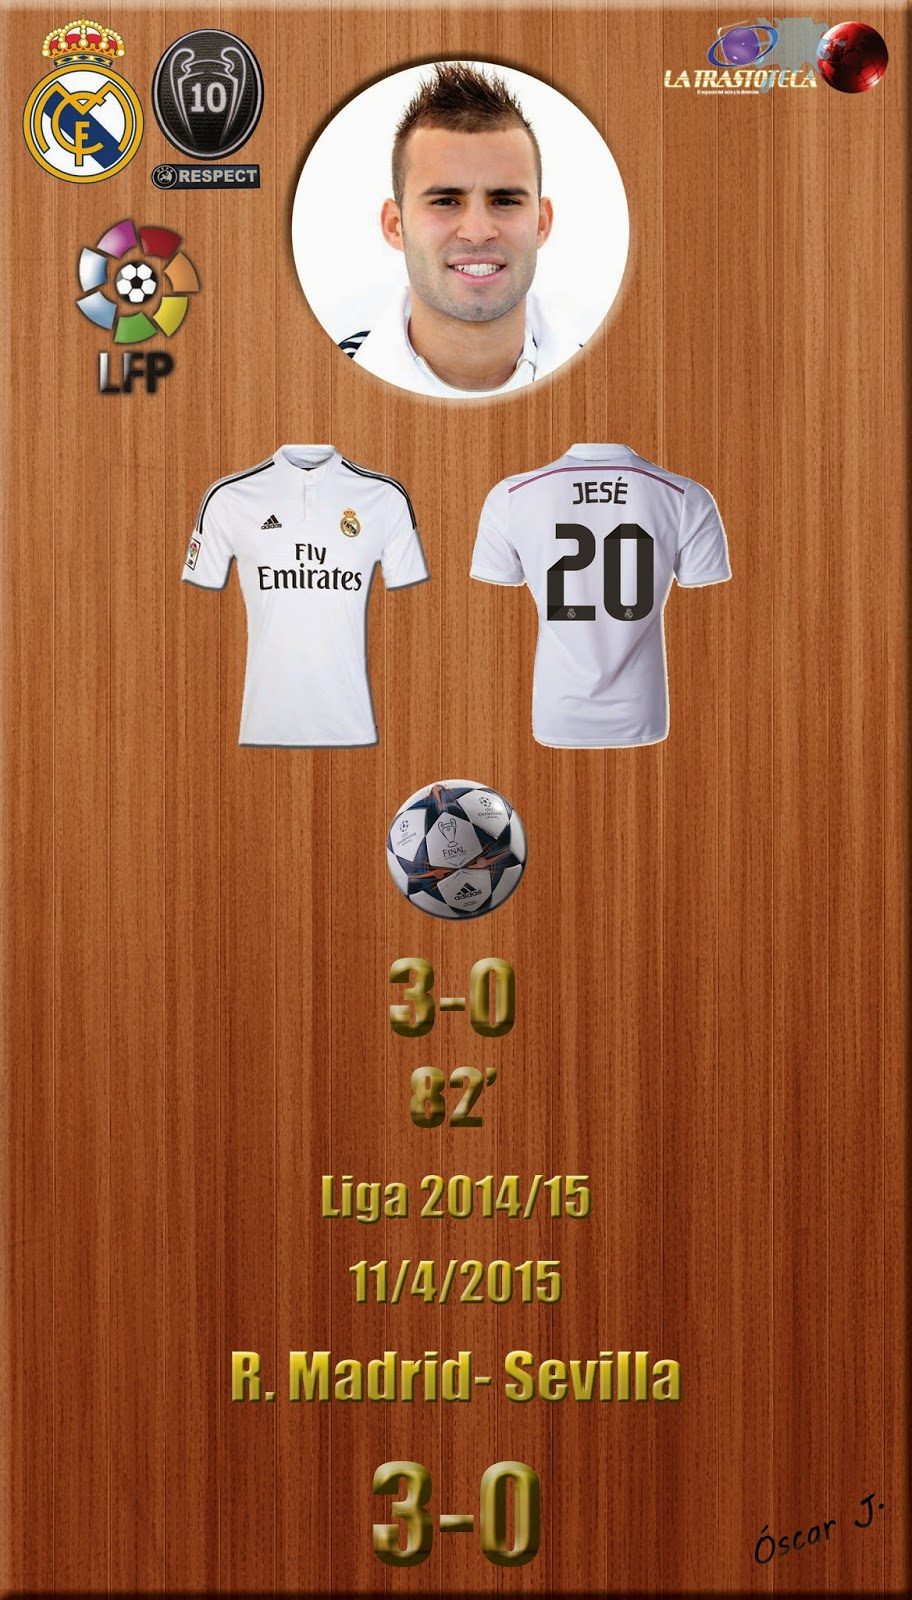 Real Madrid 3-0 Eibar - Liga 2014/15 - Jornada 31 - (11/4/2015)